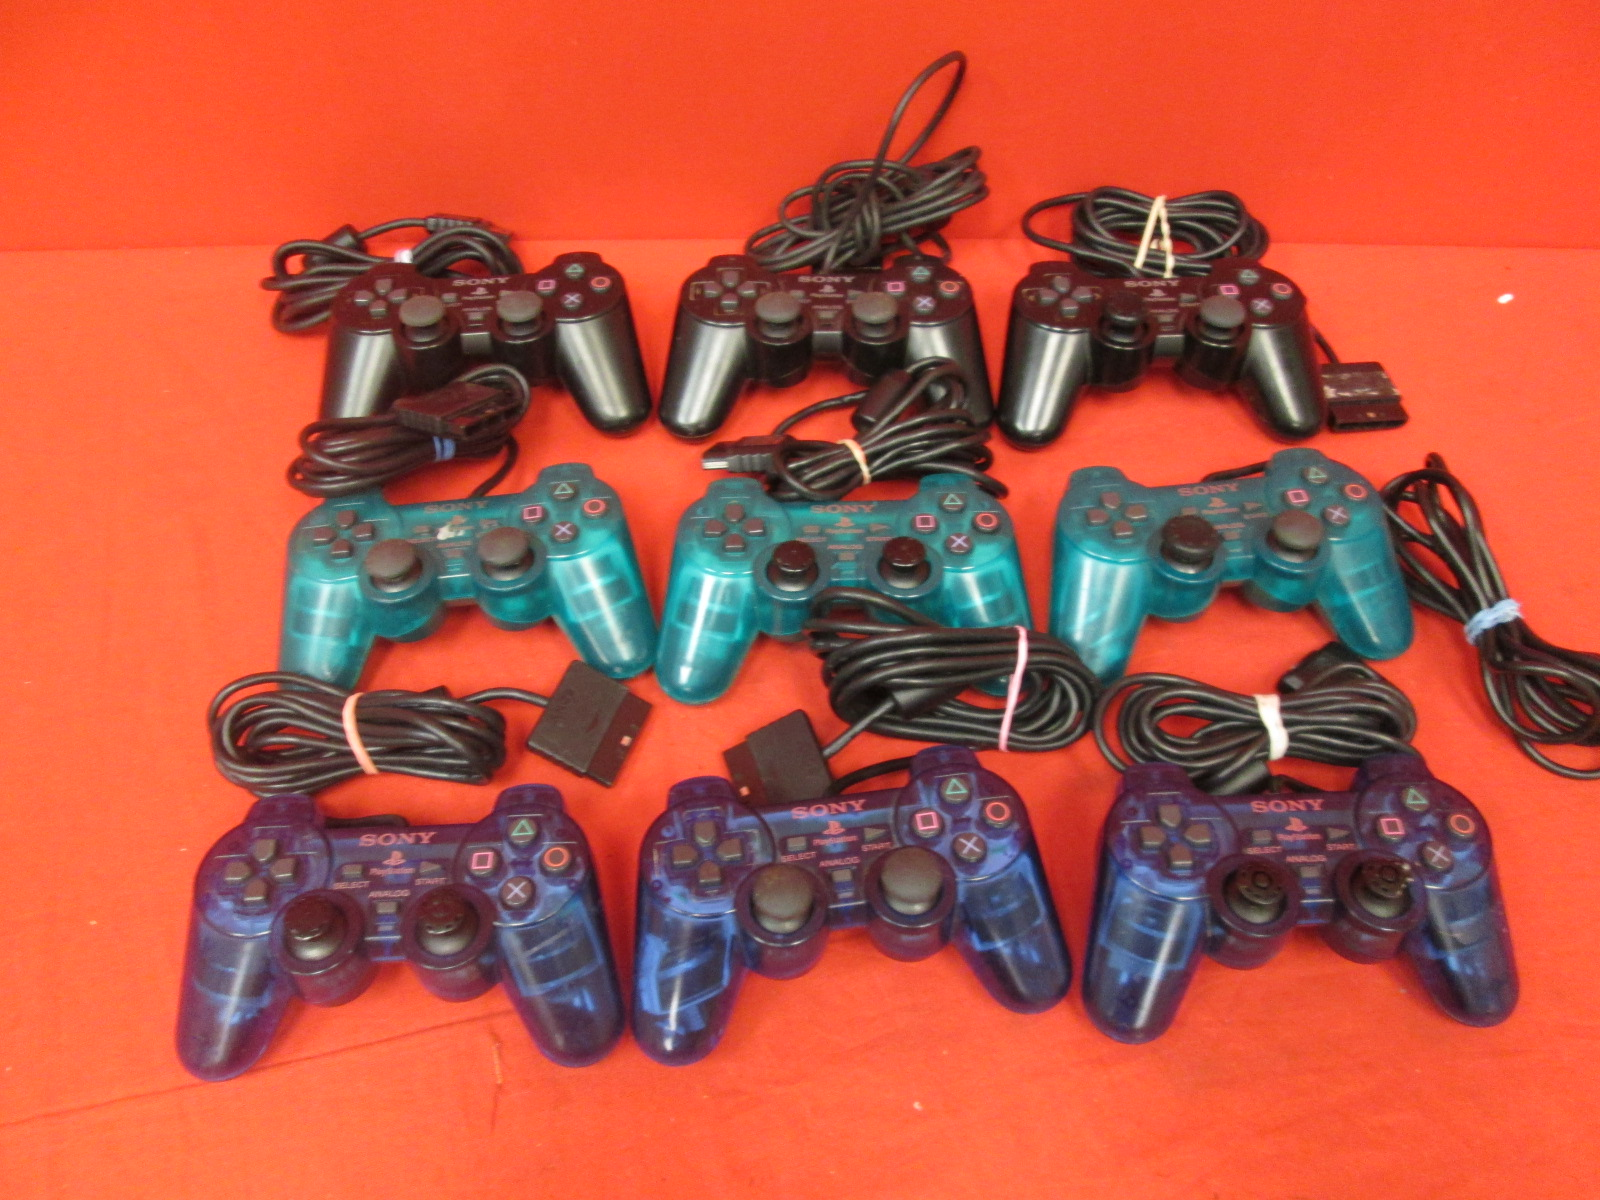 Broken Lot Of 9 Sony Dualshock Controller Black For PlayStation 2